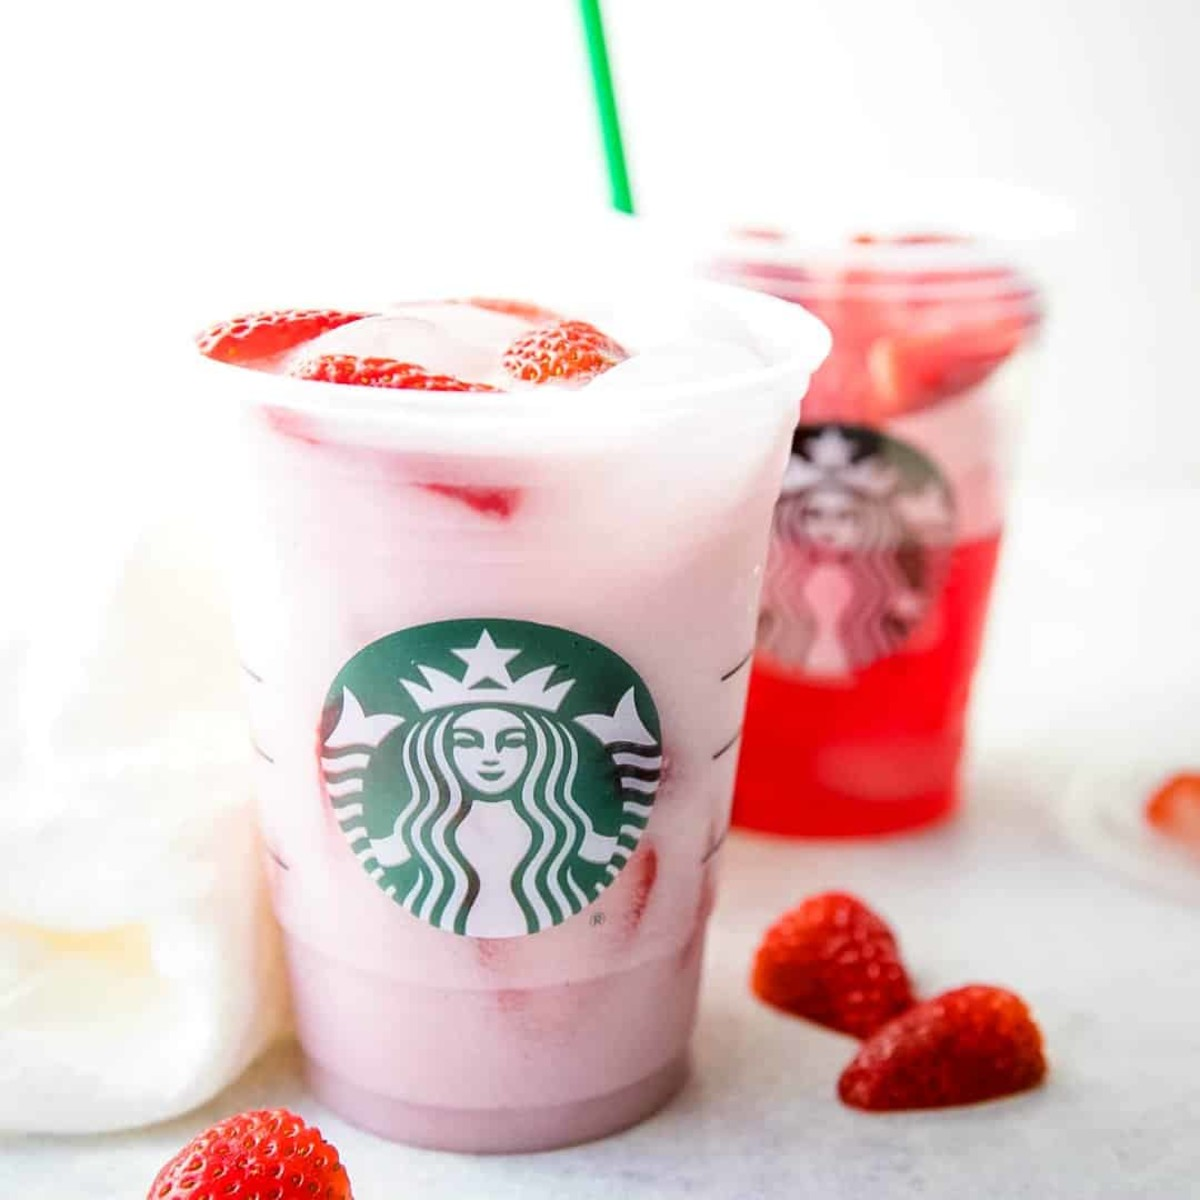 In 2016, the Starbucks pink drink was a popular alternative to the coffee menu. The pink drink is made from coconut milk that is combined with accents of passion fruit and acai berries, and topped with a scoop of strawberries.